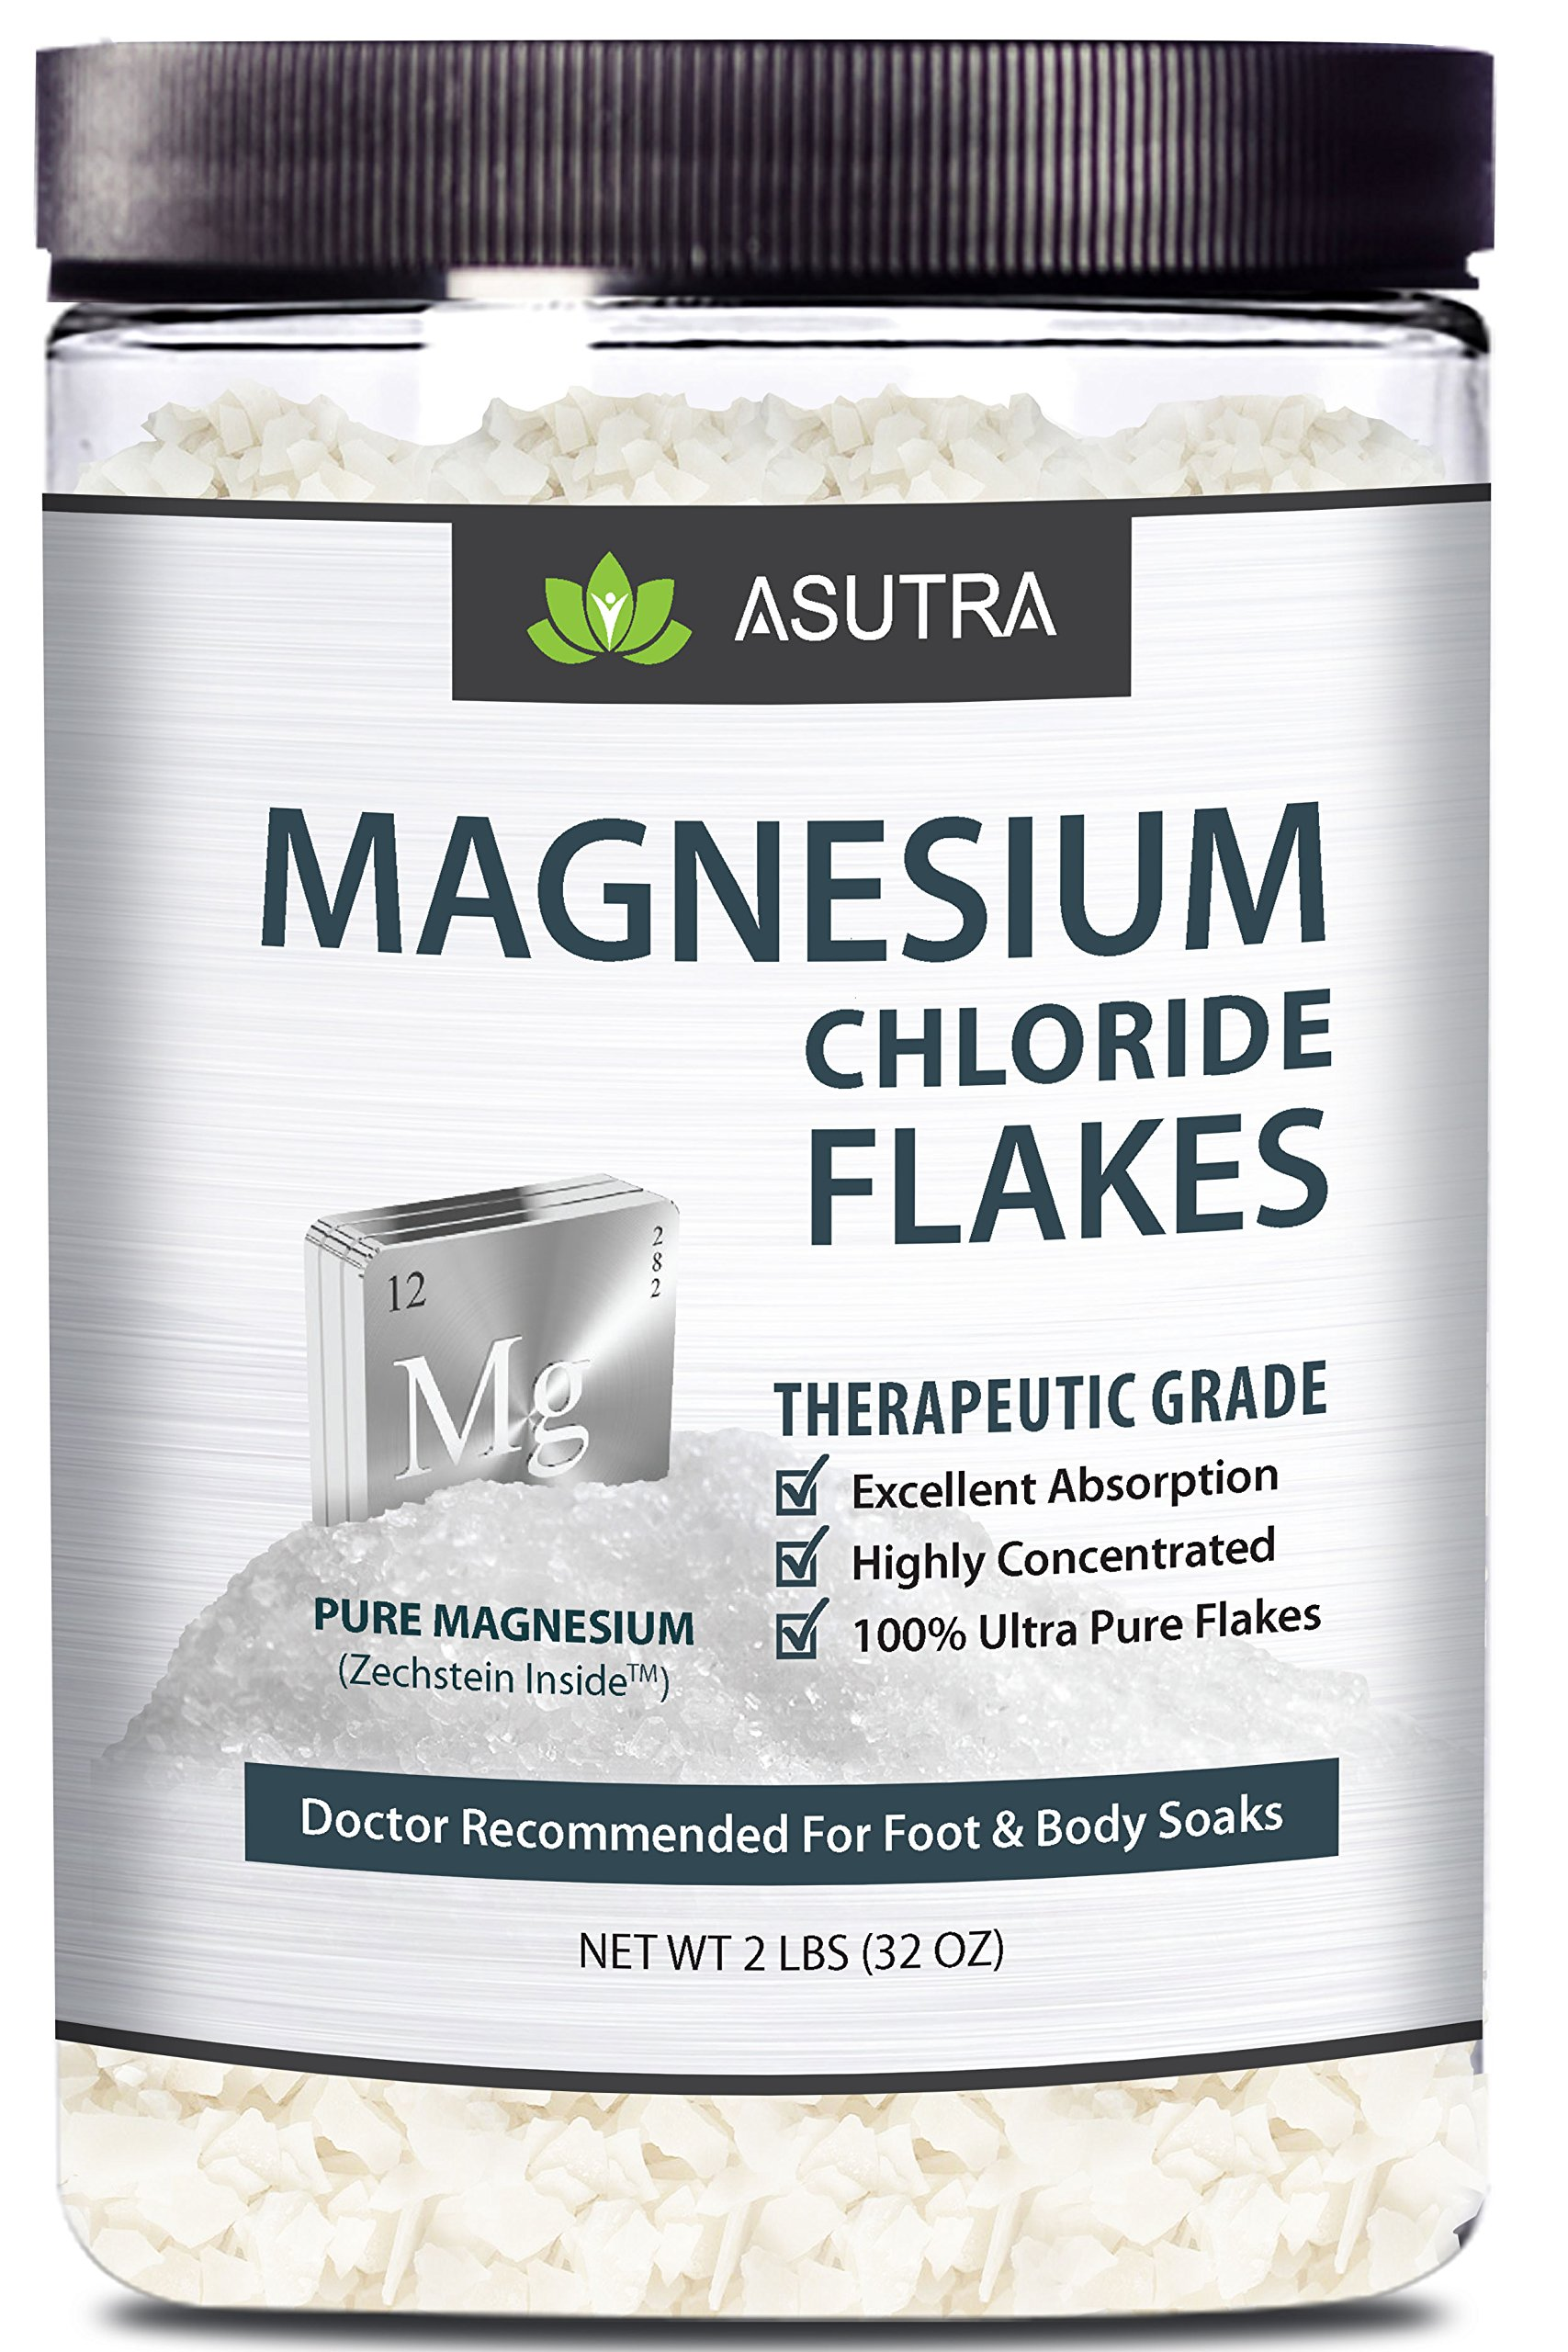 Pure Zechstein Magnesium Chloride Flakes - Doctor Recommended For Foot & Body Soaks + FREE Magnesium E-Book (one 2lb jar)